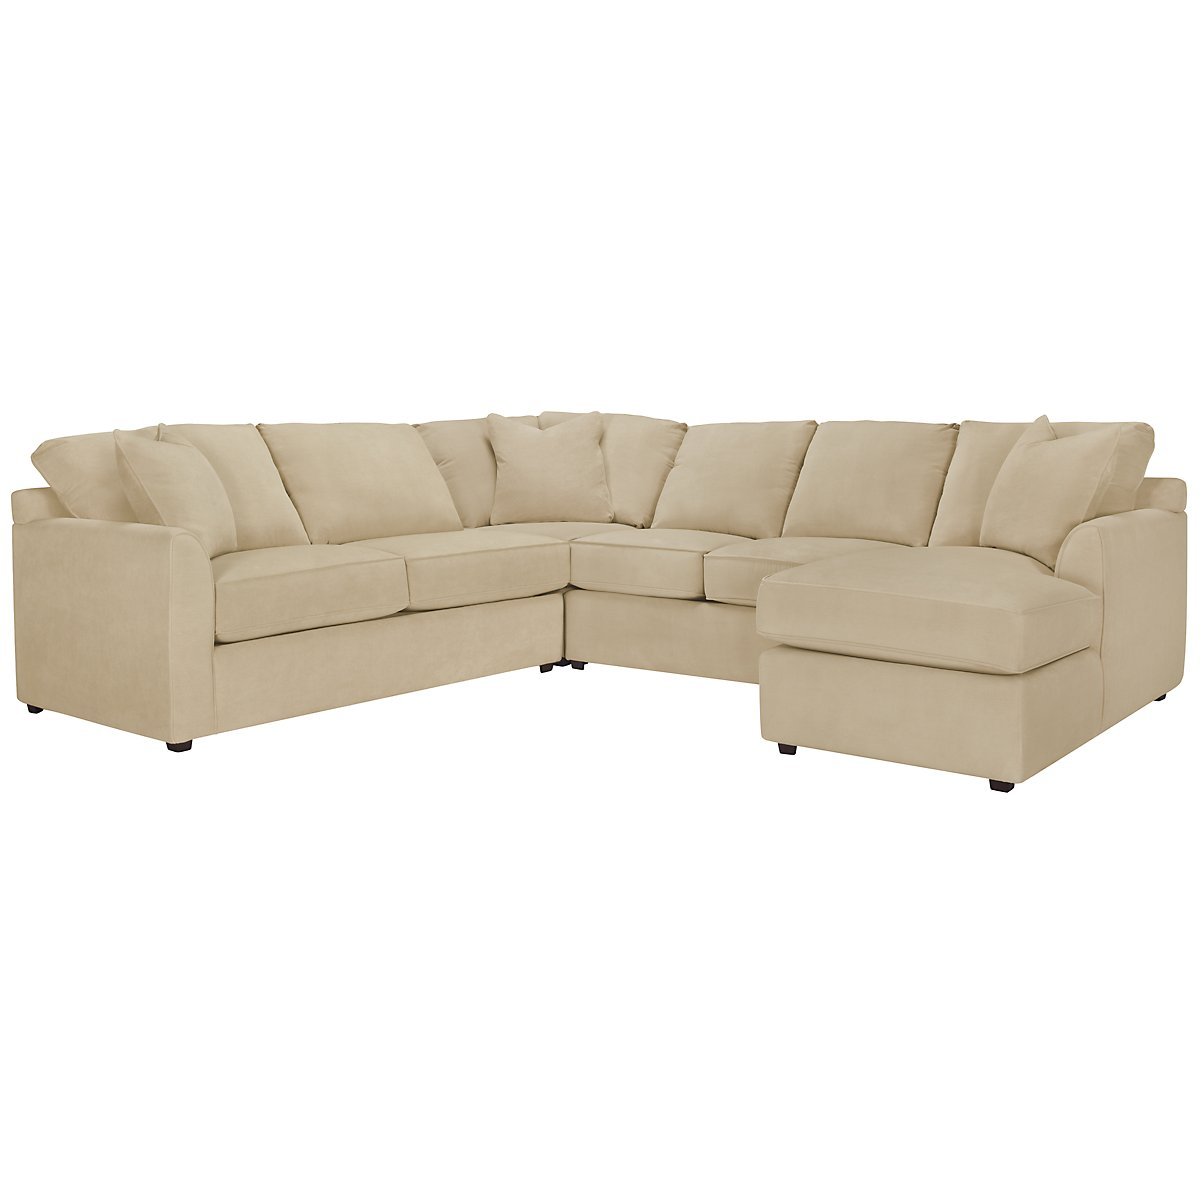 Express3 Lt Beige Microfiber Small Right Chaise Sectional